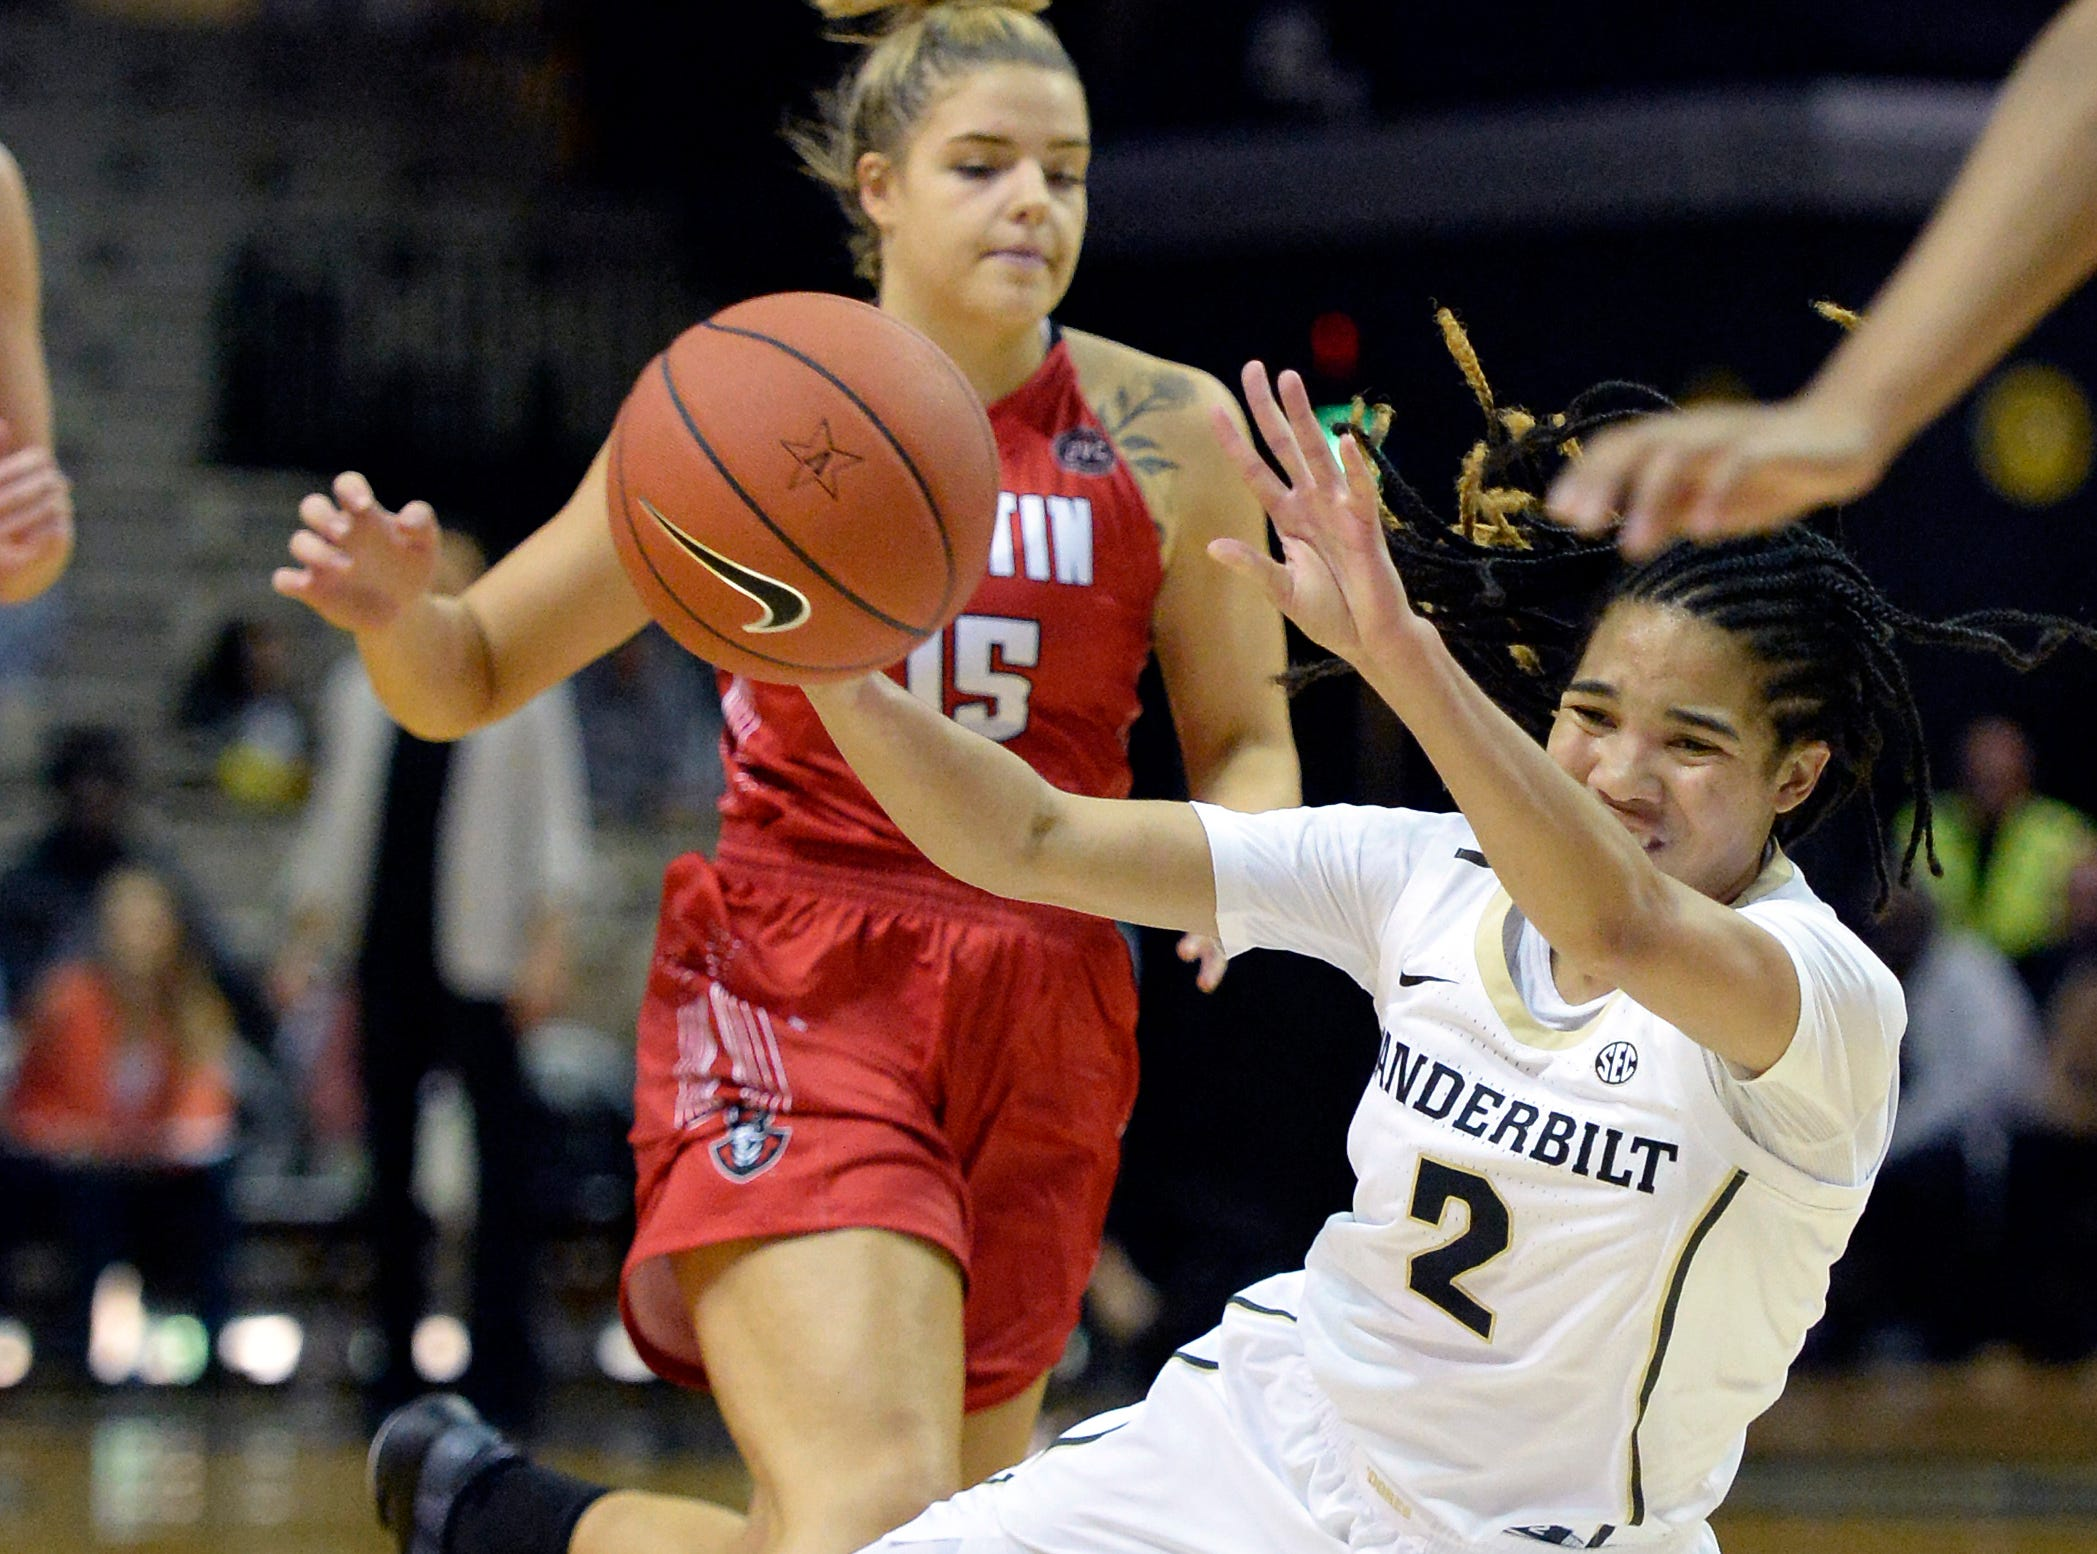 Austin Peay guard Kasey Kidwell (15) fouls Vanderbilt guard Chelsie Hall (2) from behind during the first half of an NCAA college basketball game Monday, Nov. 12, 2018, in Nashville, Tenn.